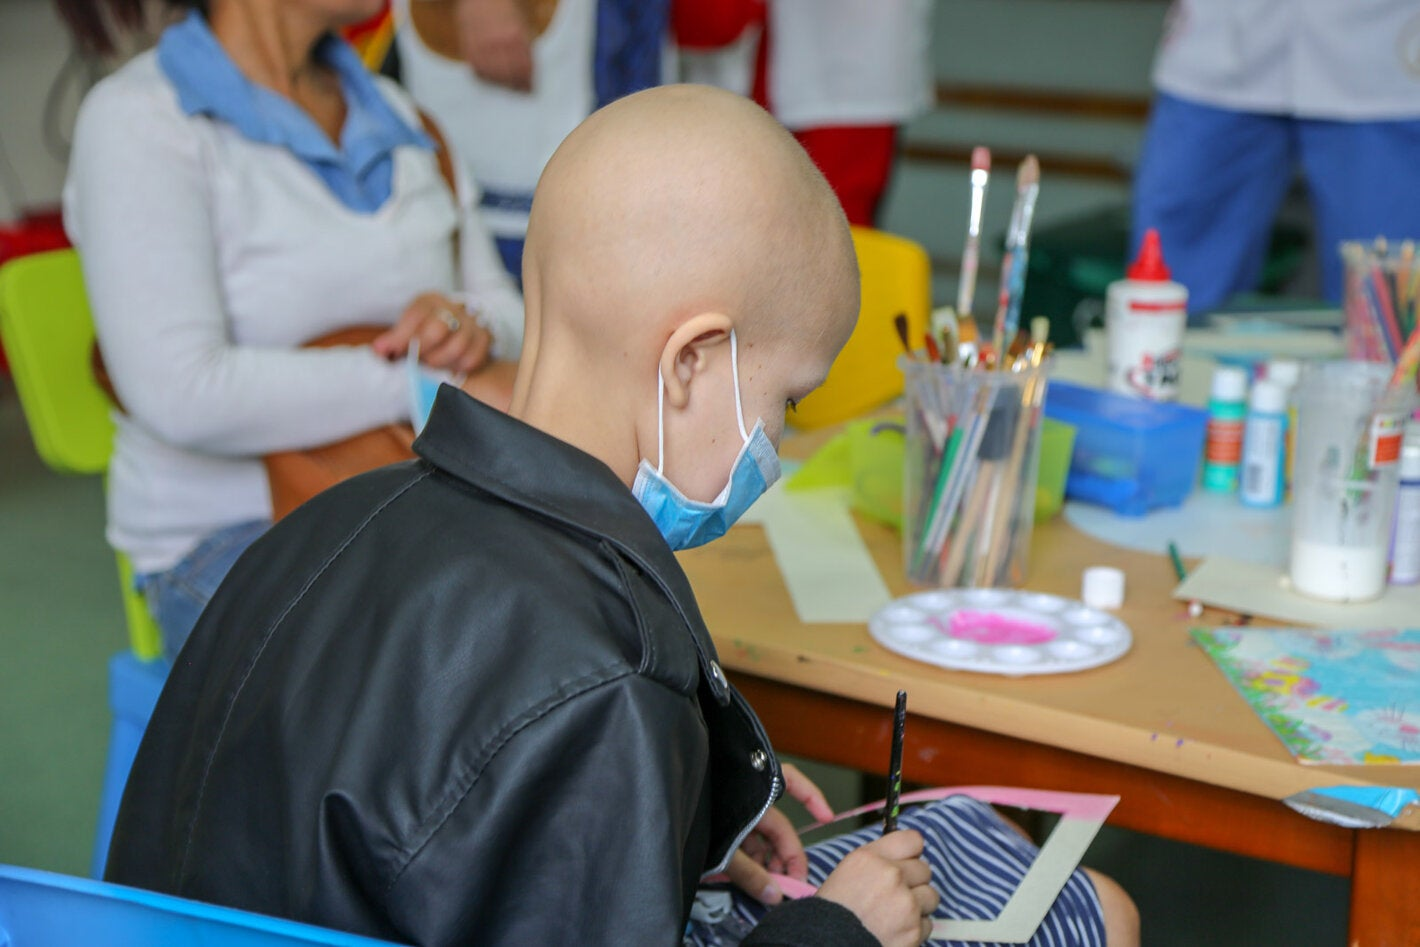 child a with cancer